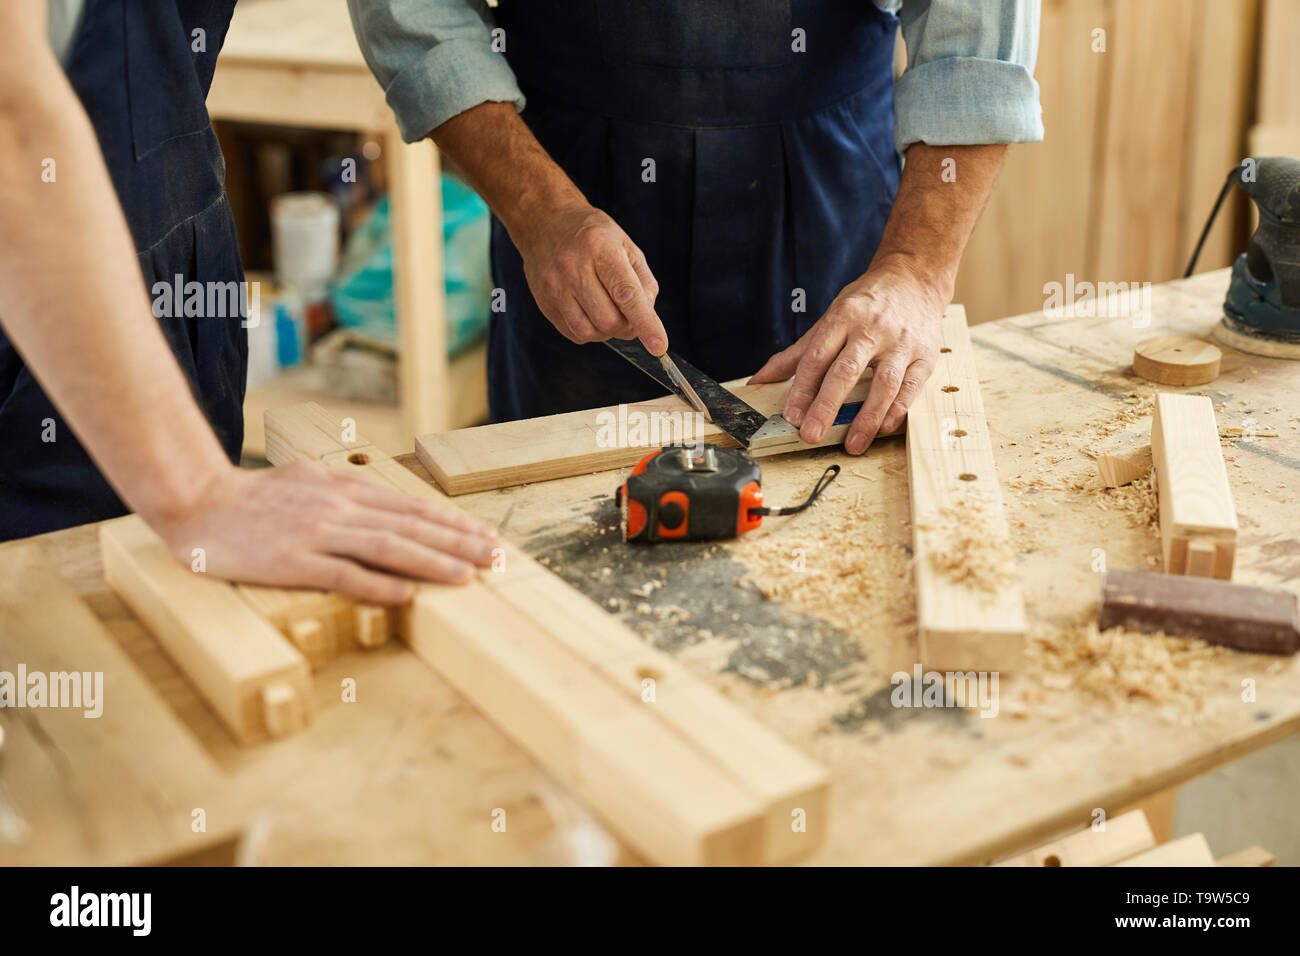 Closeup of carpenters workstation with senior man measuring wood, copy space - Stock Image